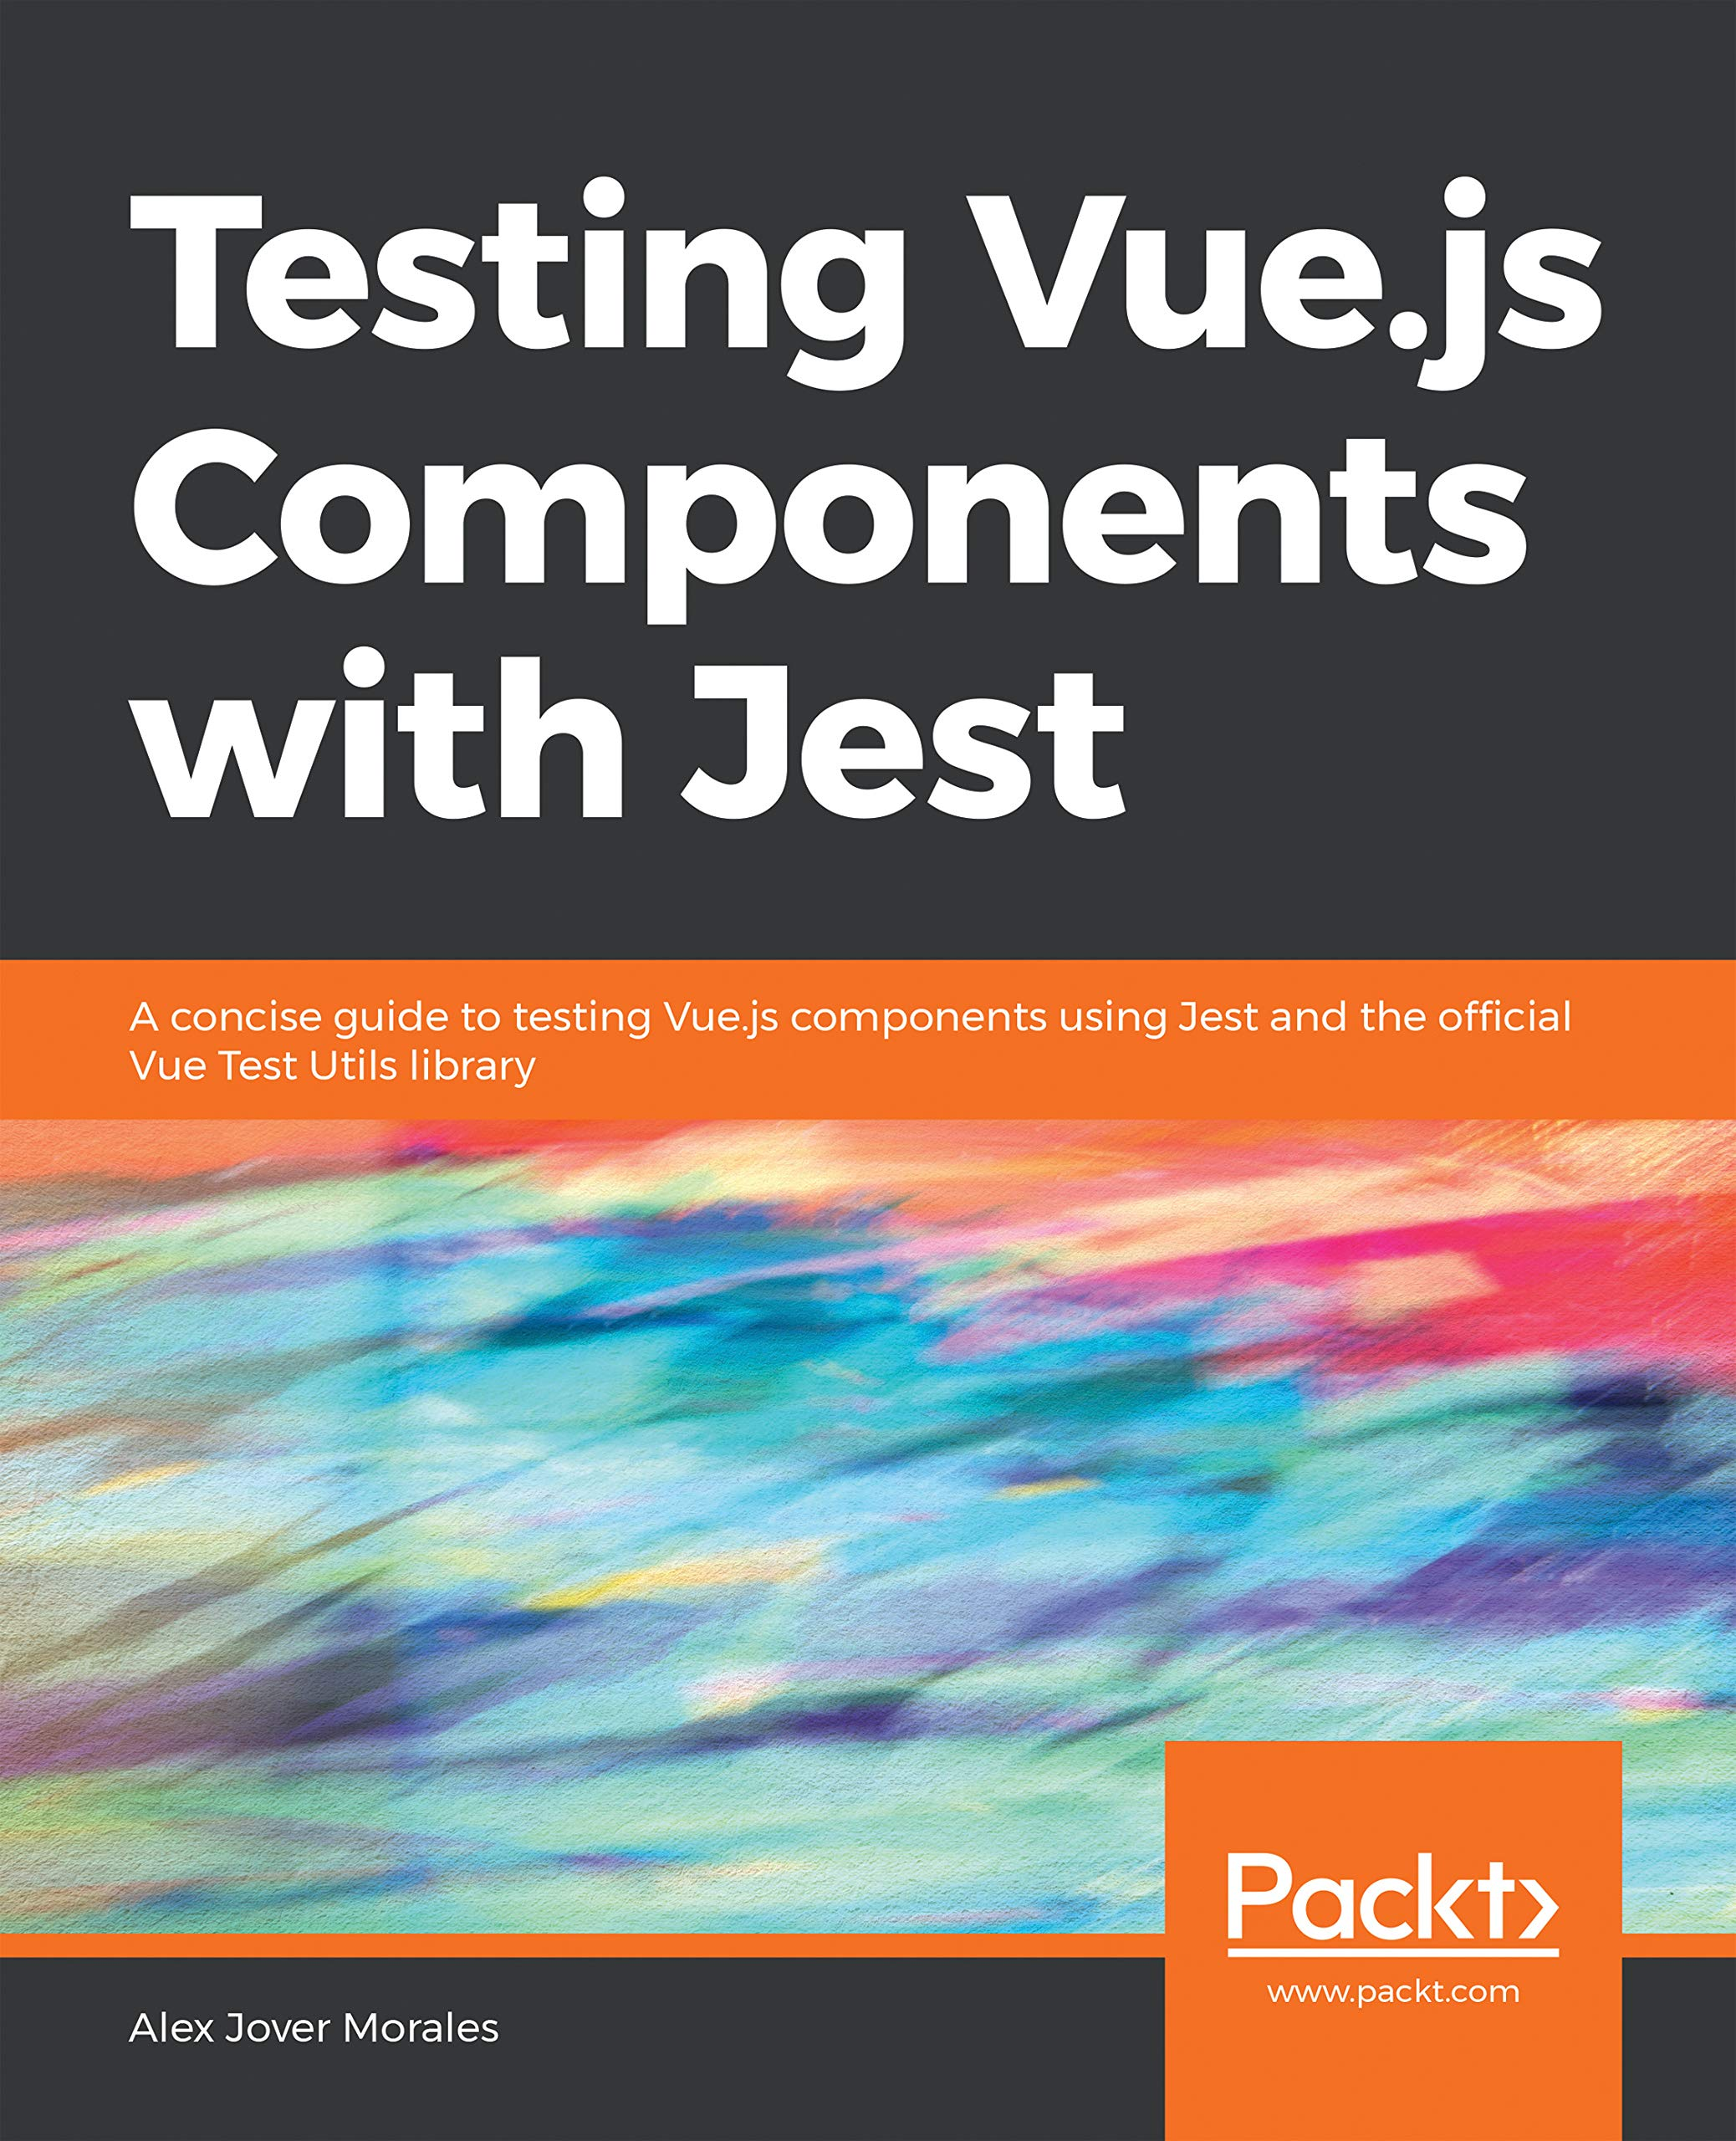 Testing Vue.js Components with Jest: A concise guide to testing Vue.js components using Jest and the official Vue Test Utils library